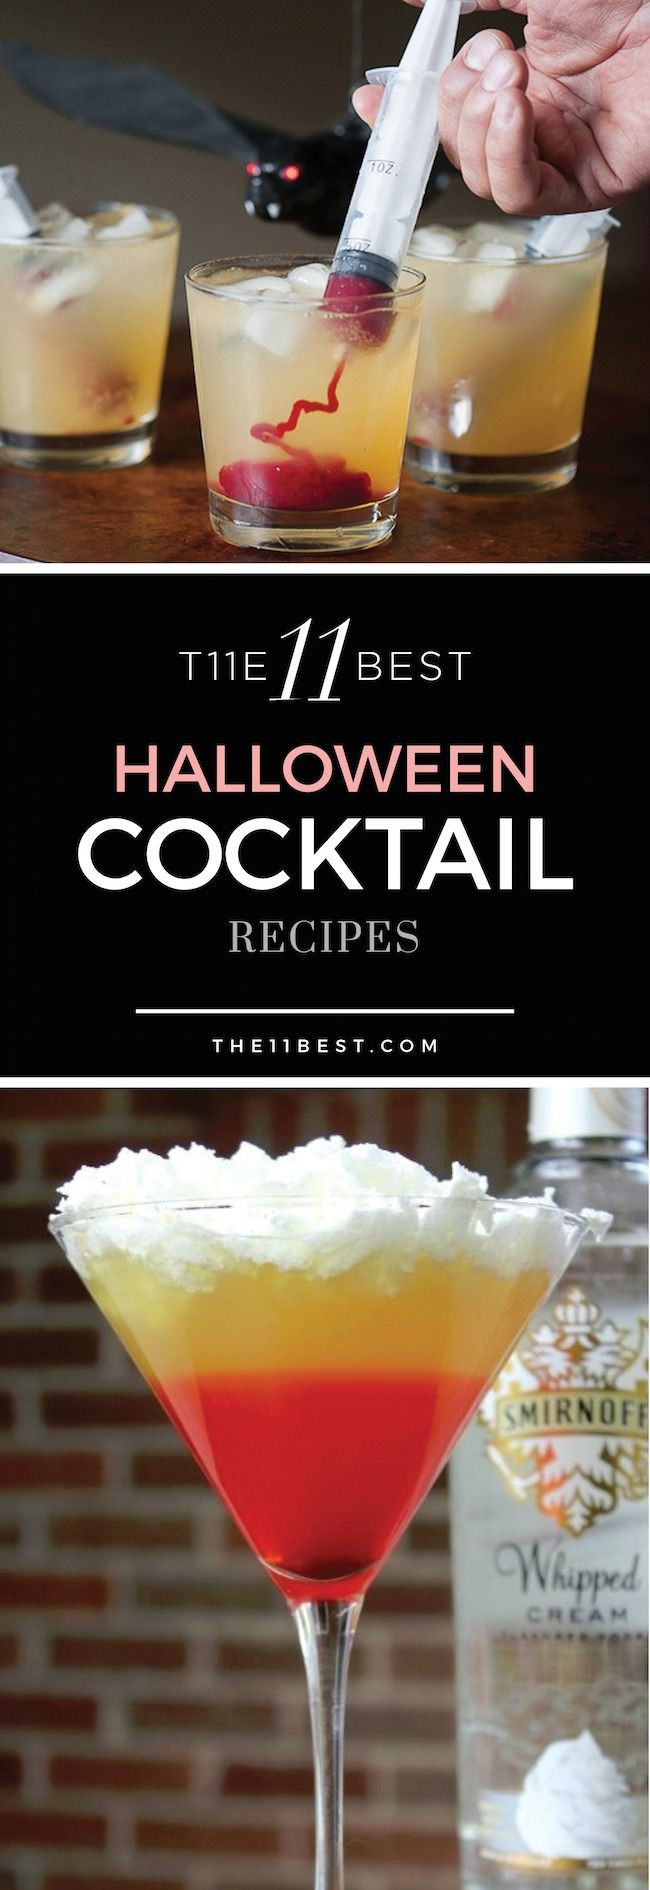 Halloween Drinks Pinterest  Best 25 Halloween cocktails ideas on Pinterest